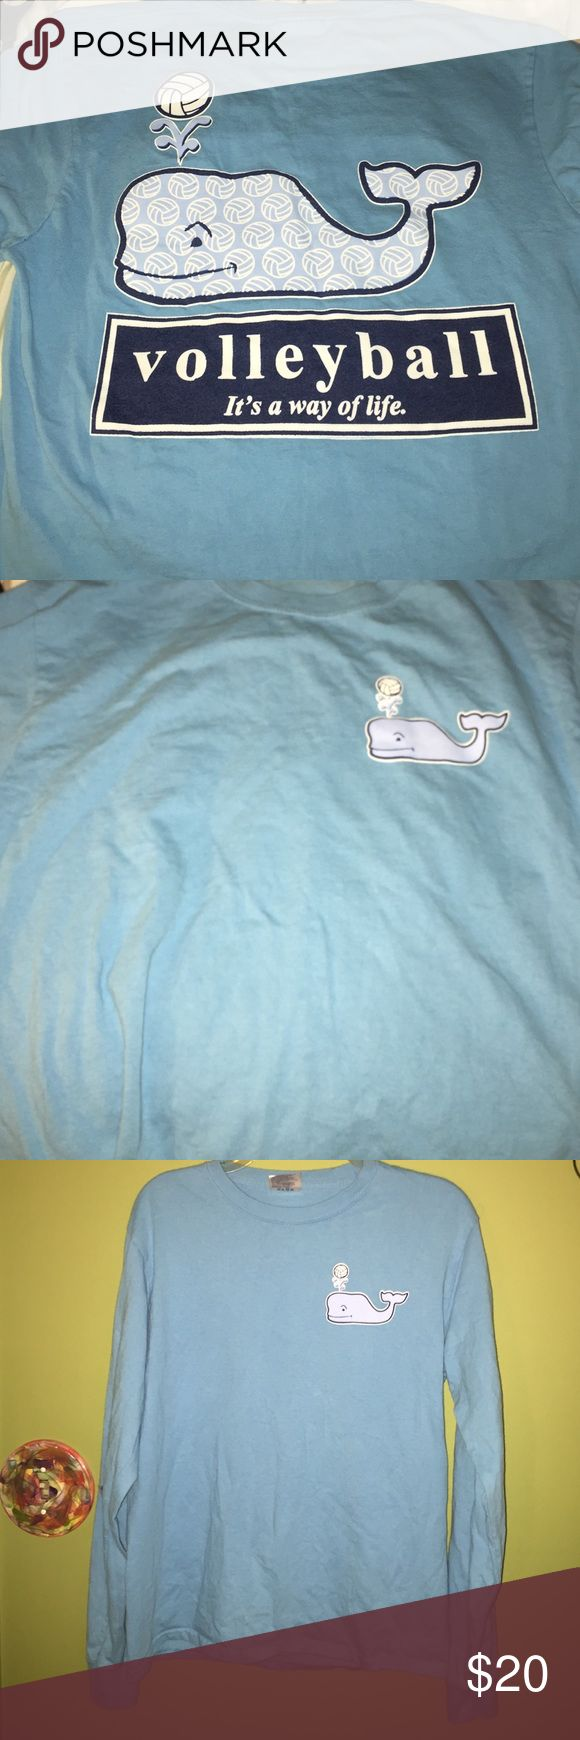 Volleyball Whale Shirt Only worn one time!! Isn't a real vineyard vines t shirt Vineyard Vines Tops Tees - Long Sleeve